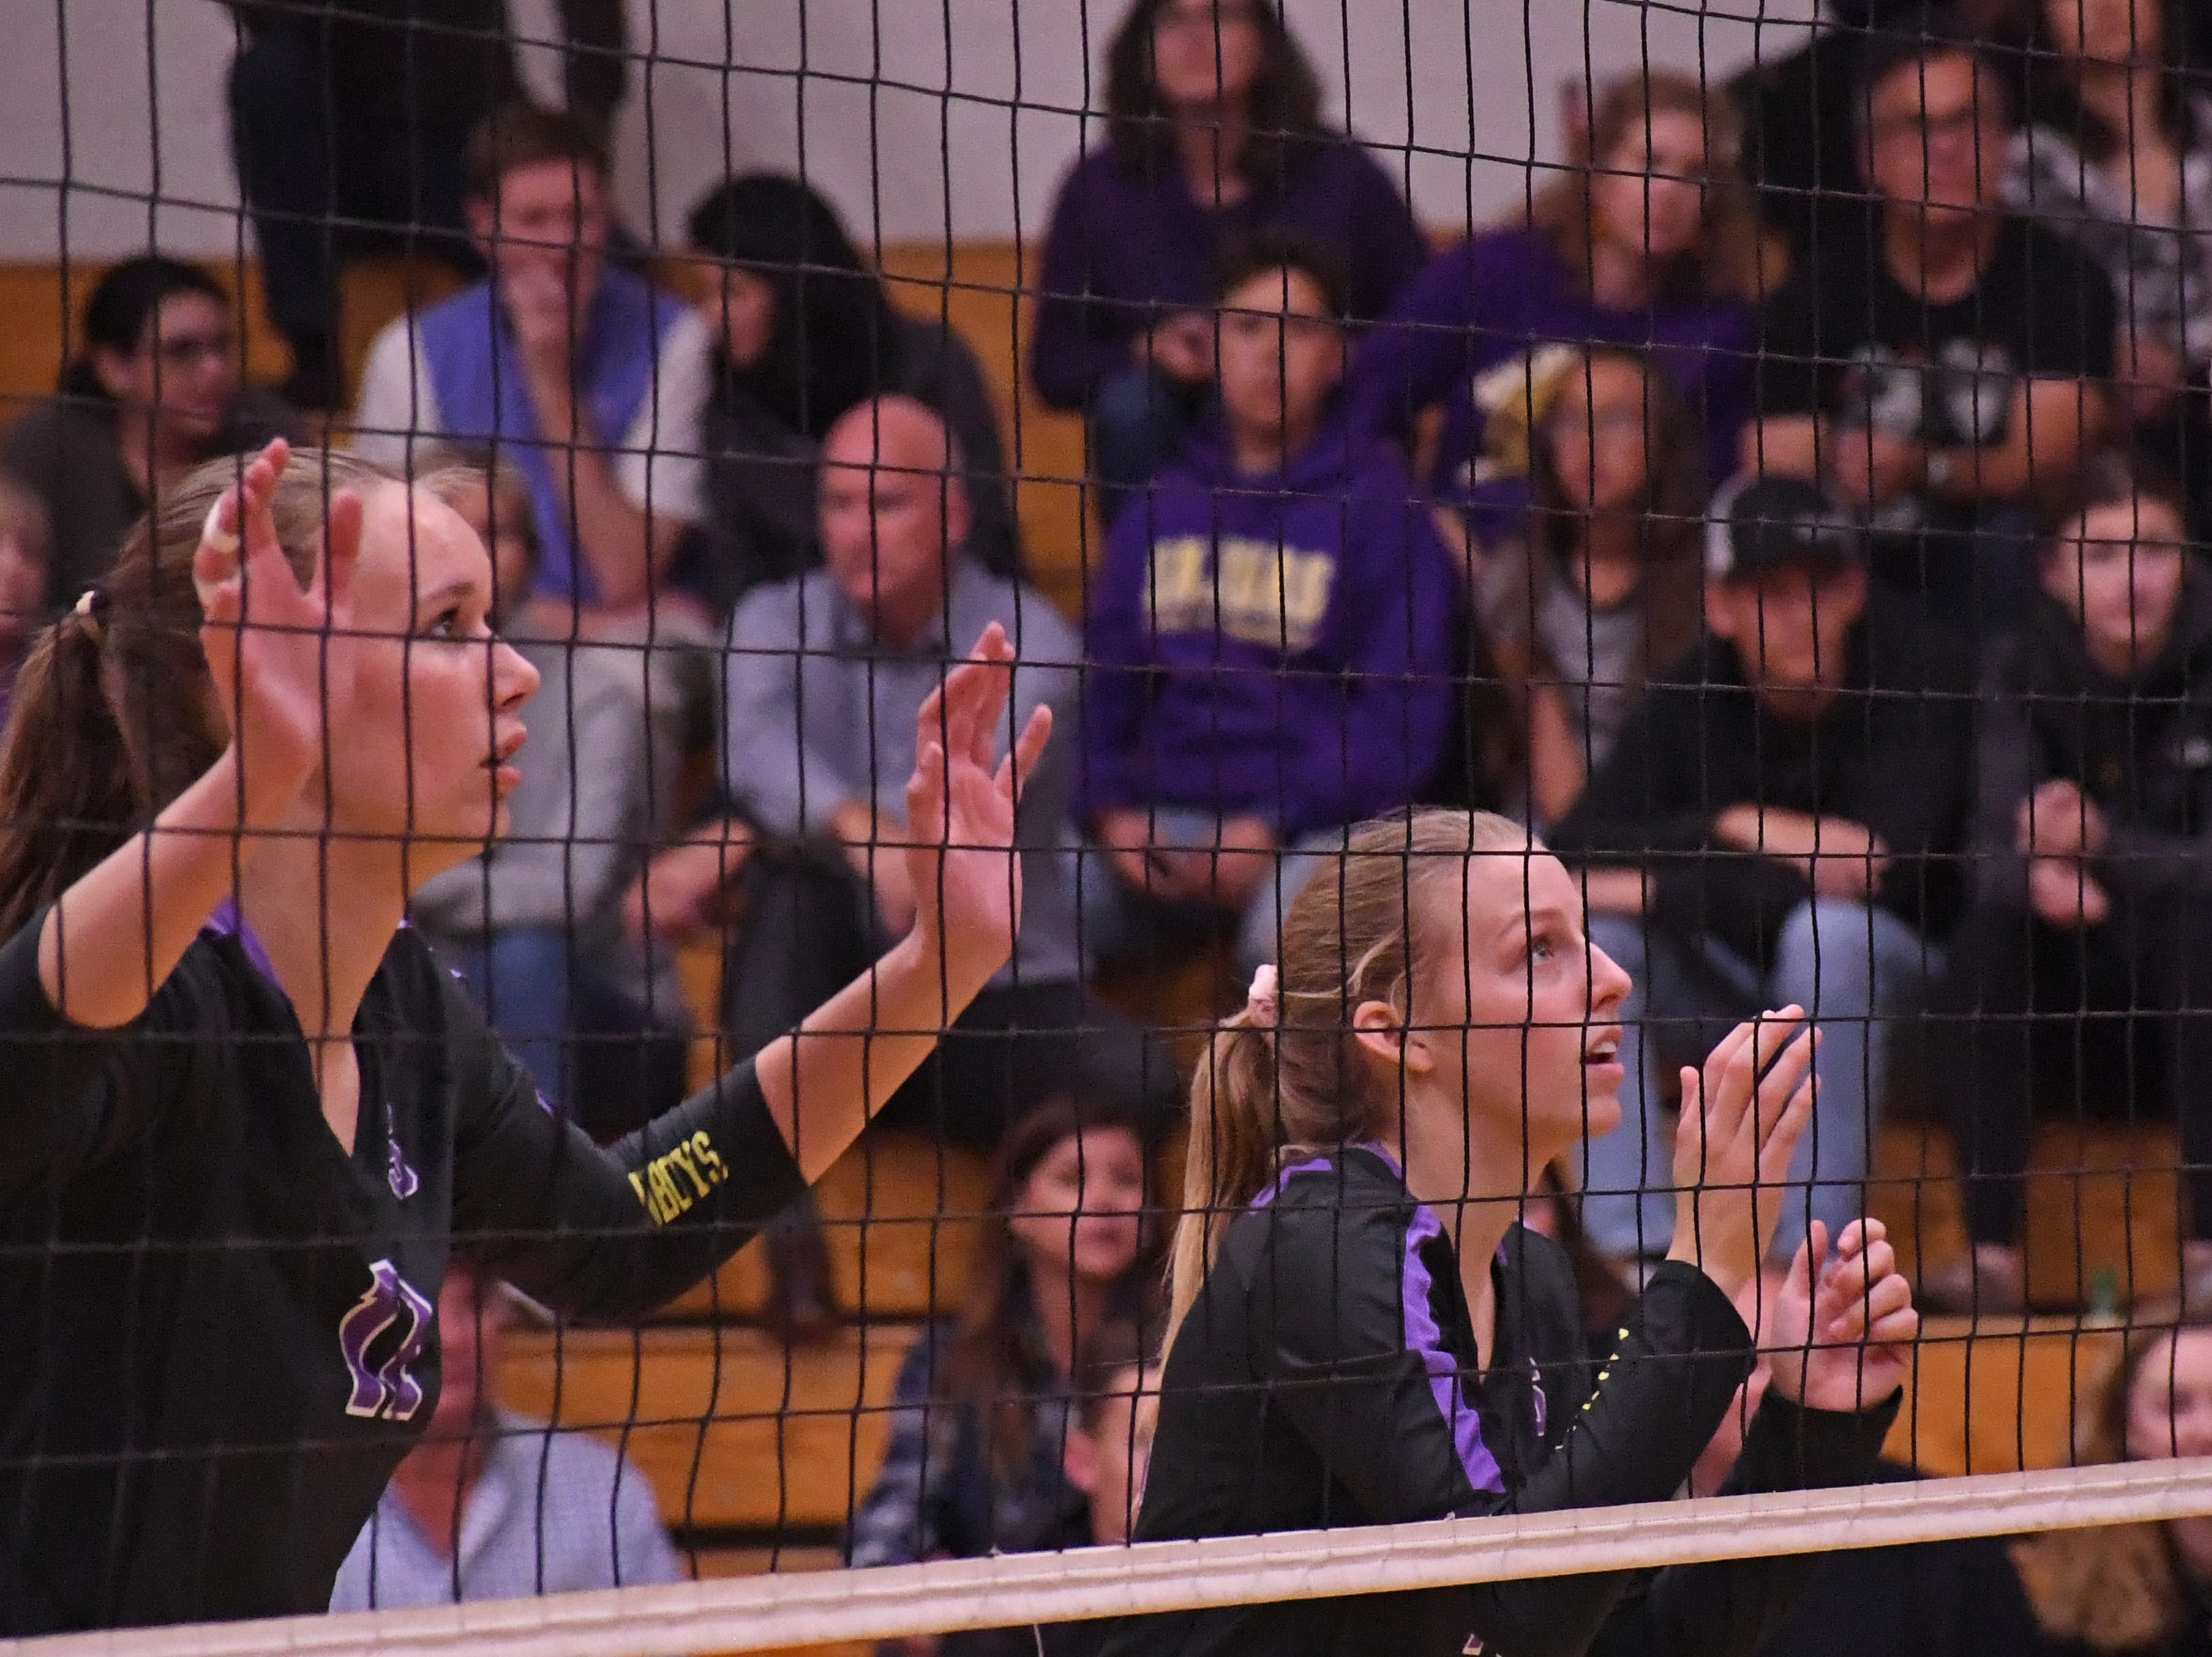 Middle blocker Savannah Maker (11) and outside hitter Ashleigh Souza (10) wait for a serve from Los Gatos' side.